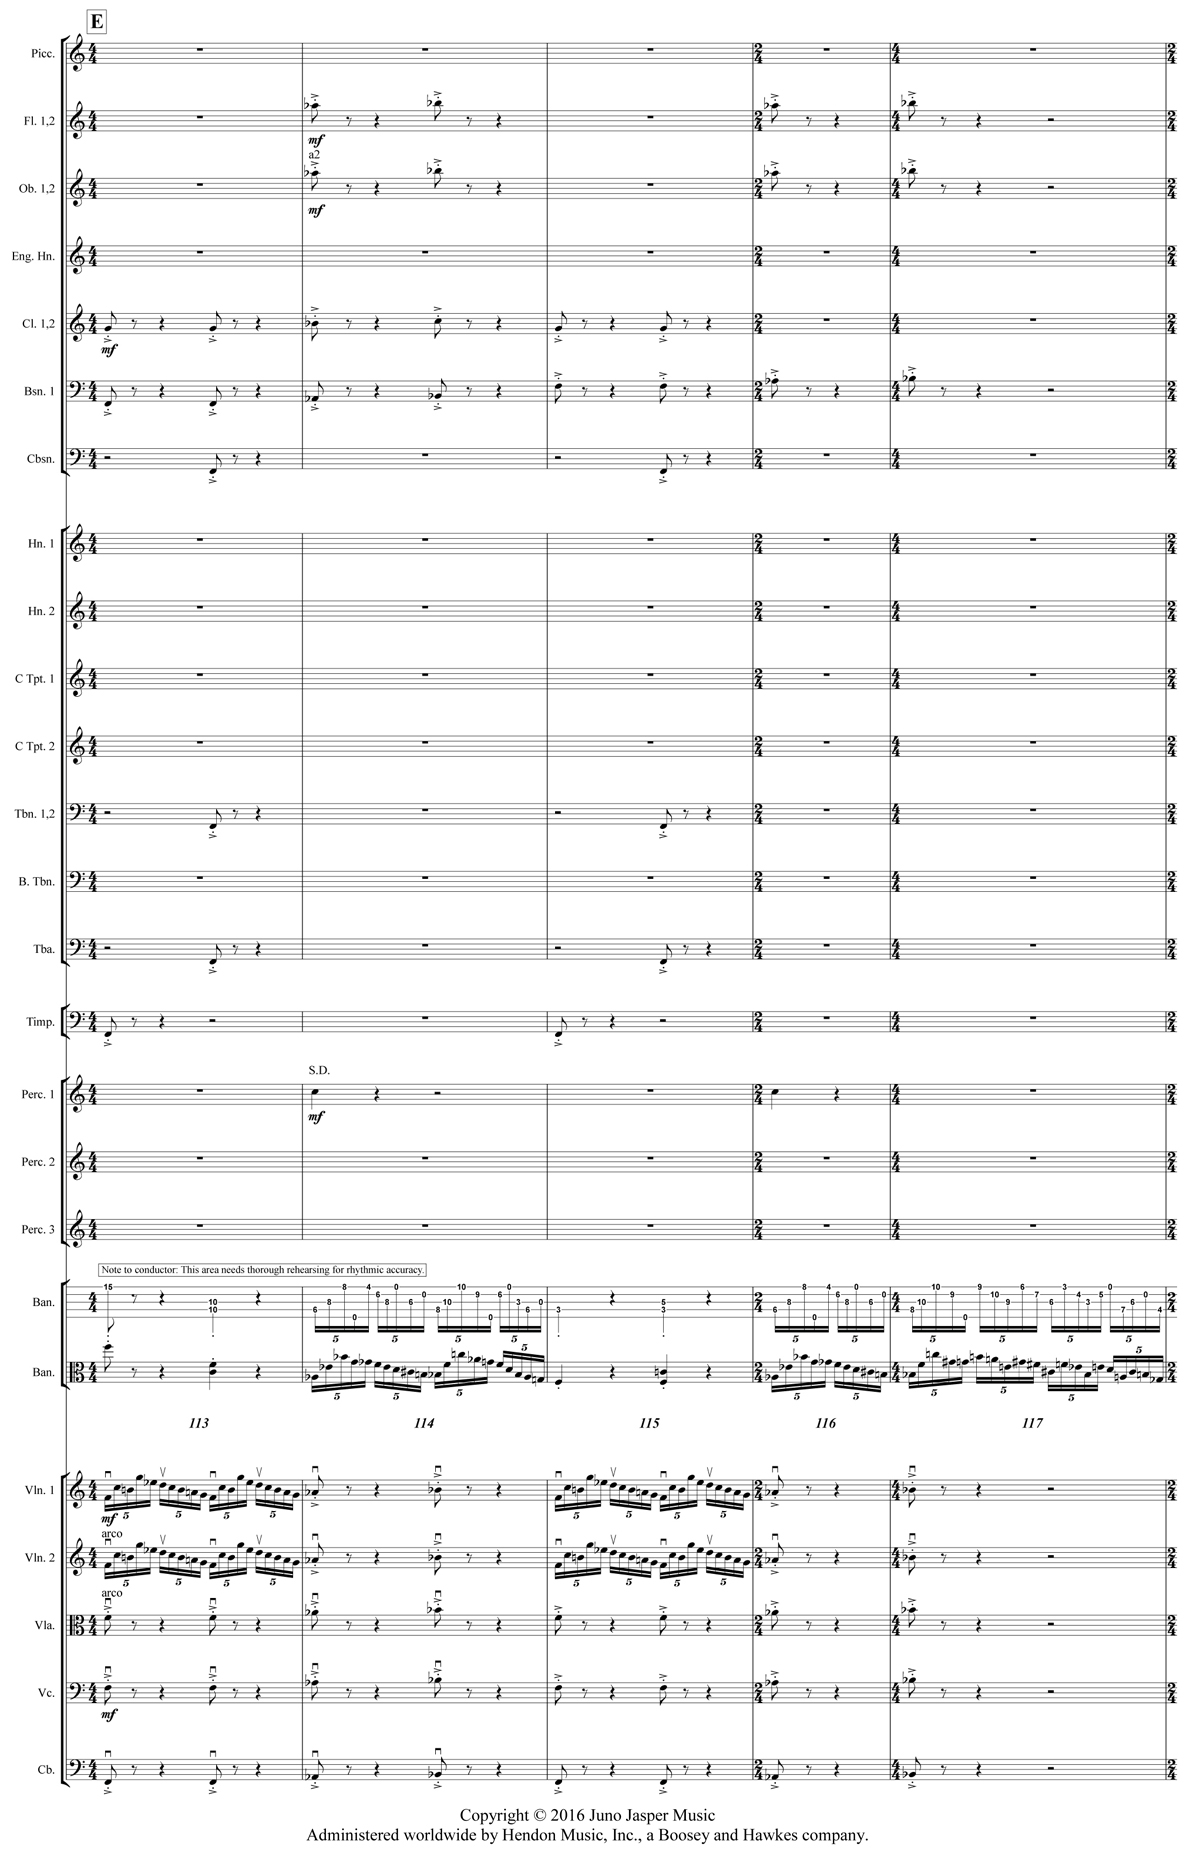 Excerpt from the full orchestral score of Béla Fleck's Juno Concerto